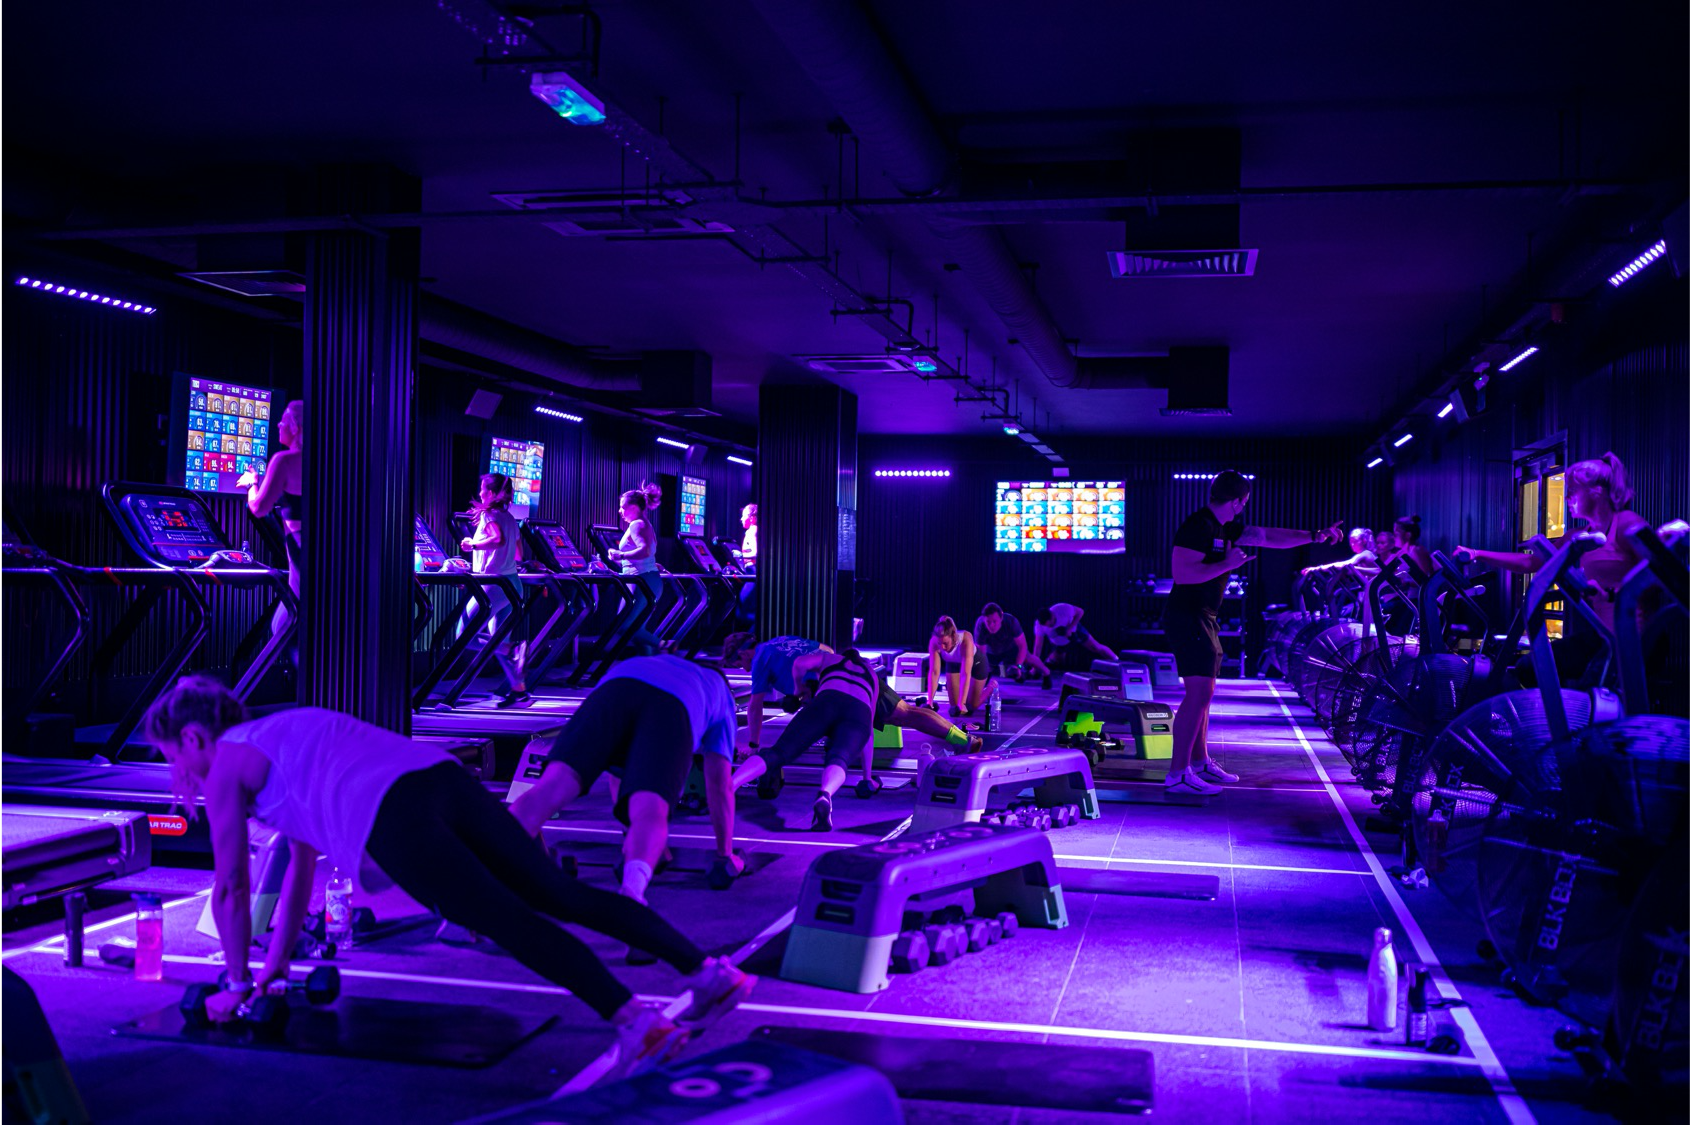 Urban Gym Group brings boutique fitness franchise TRIB3 to the Benelux Twenty stores to be rolled out across five years